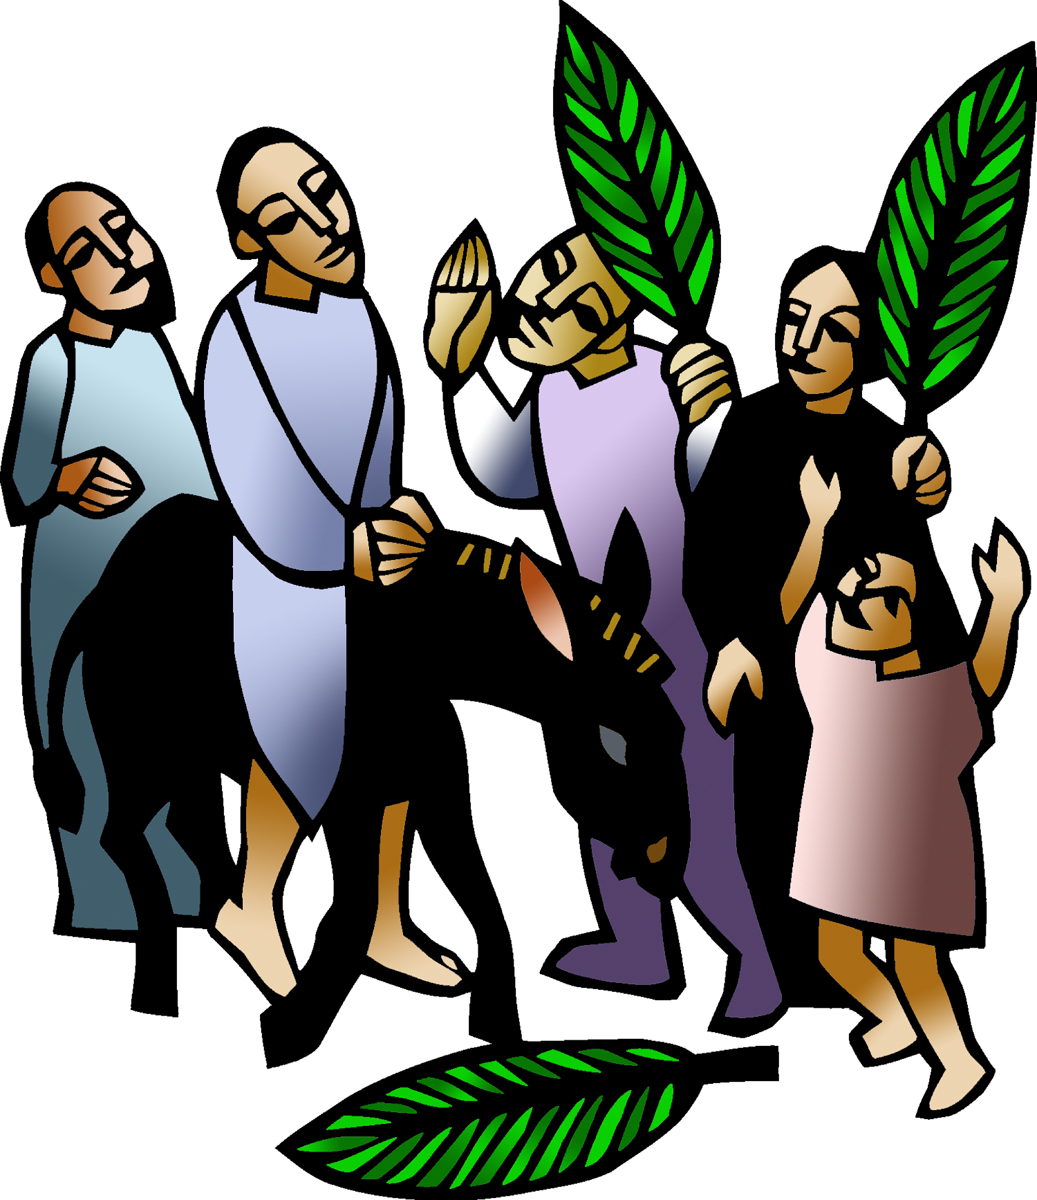 Palm sunday clipart african american, Picture #45615 palm.